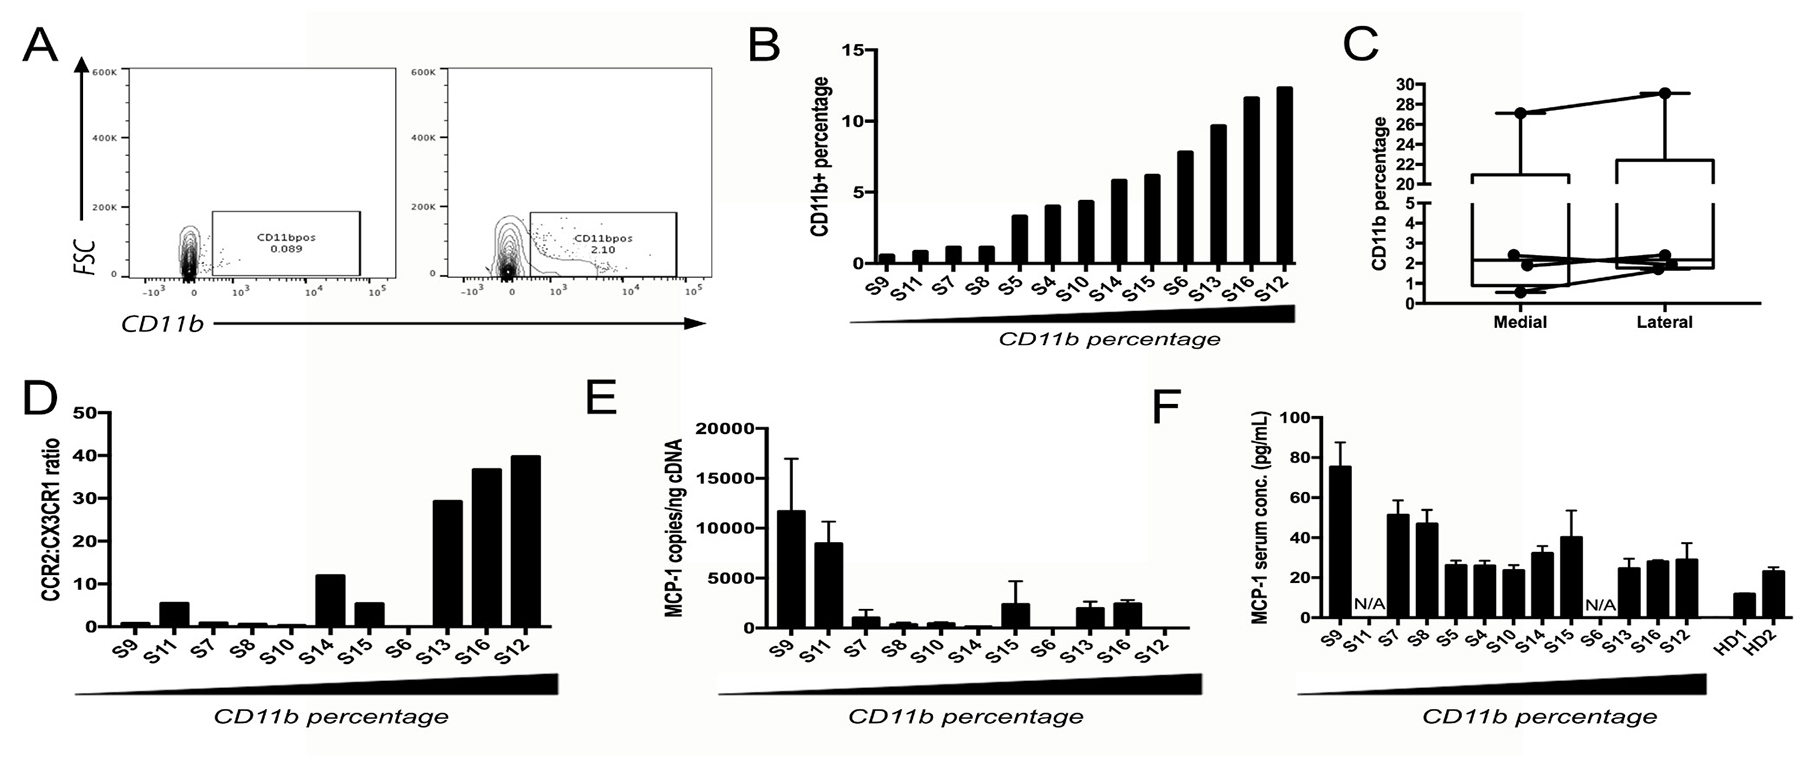 Oncotarget | Stratifying nonfunctional pituitary adenomas